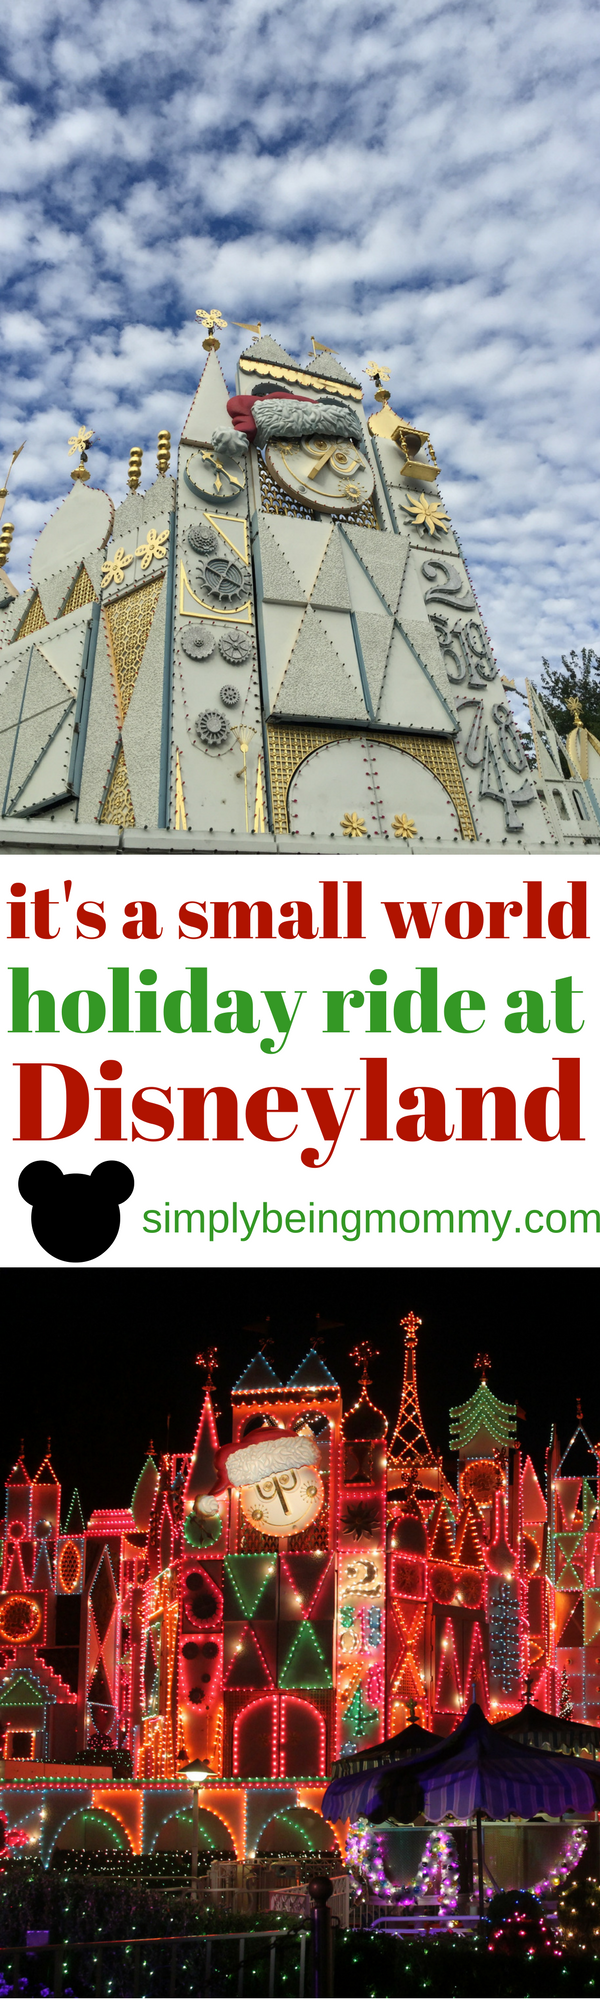 It's a world of laughter, a world of tears. A world of hope and a world of fears. It's a world of 20 years of it's a small world holiday ride at Disneyland!